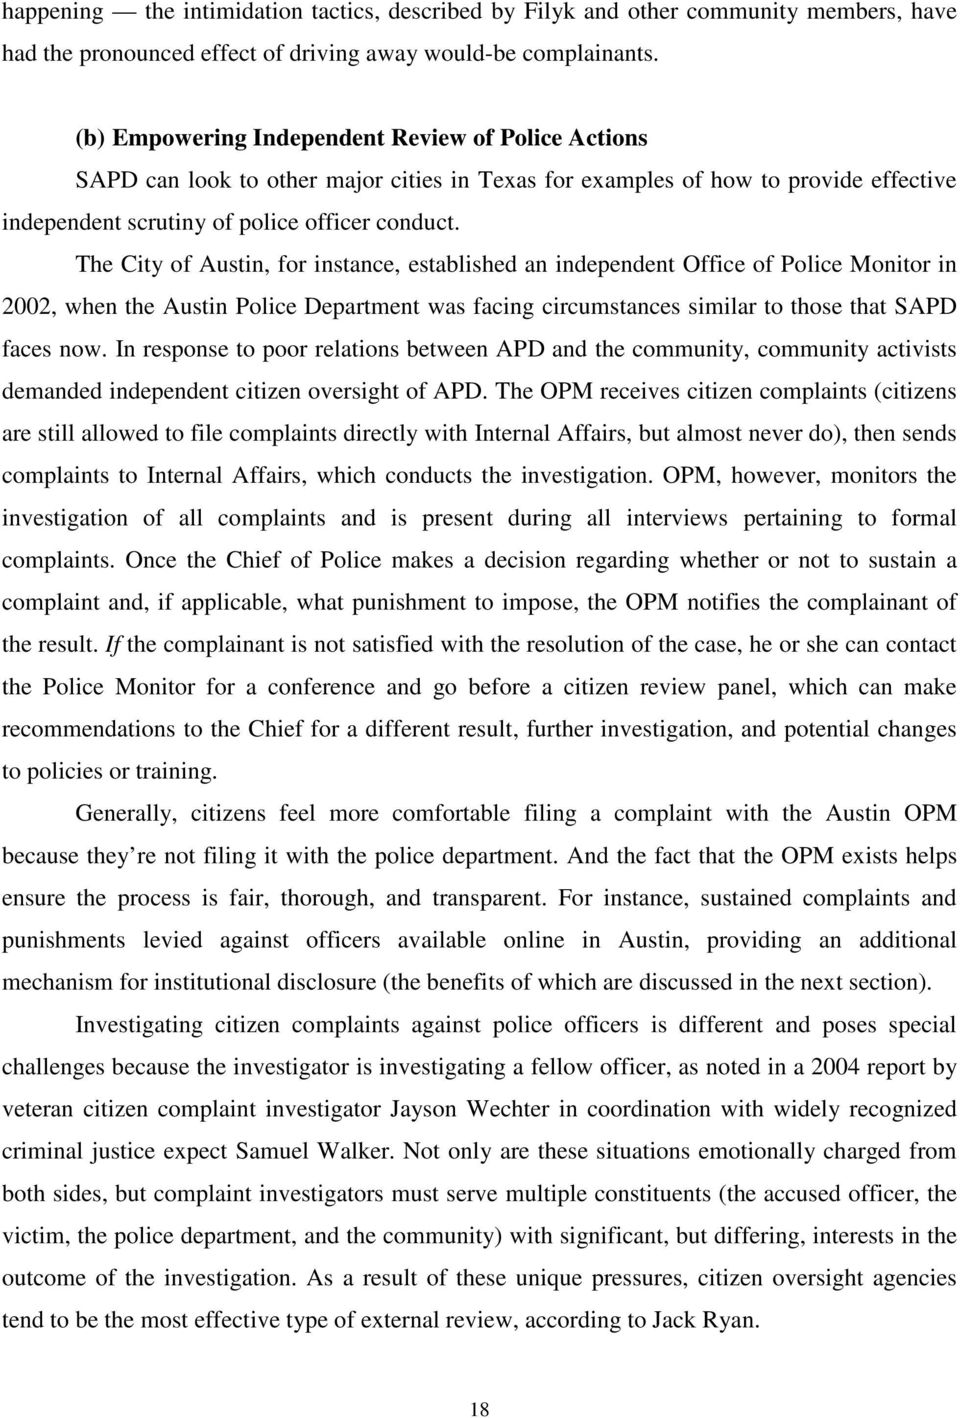 The City of Austin, for instance, established an independent Office of Police Monitor in 2002, when the Austin Police Department was facing circumstances similar to those that SAPD faces now.